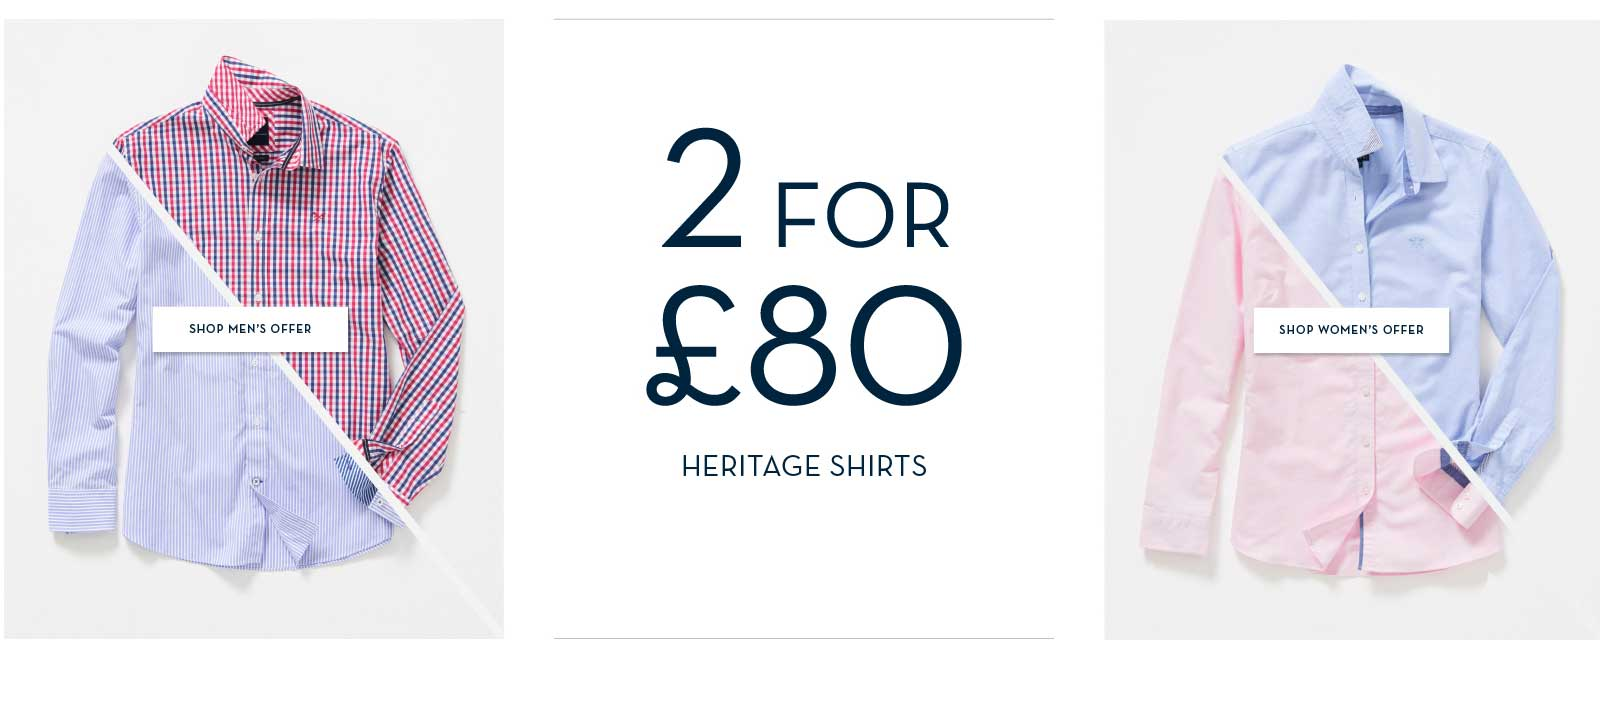 2 for £80 Shirts